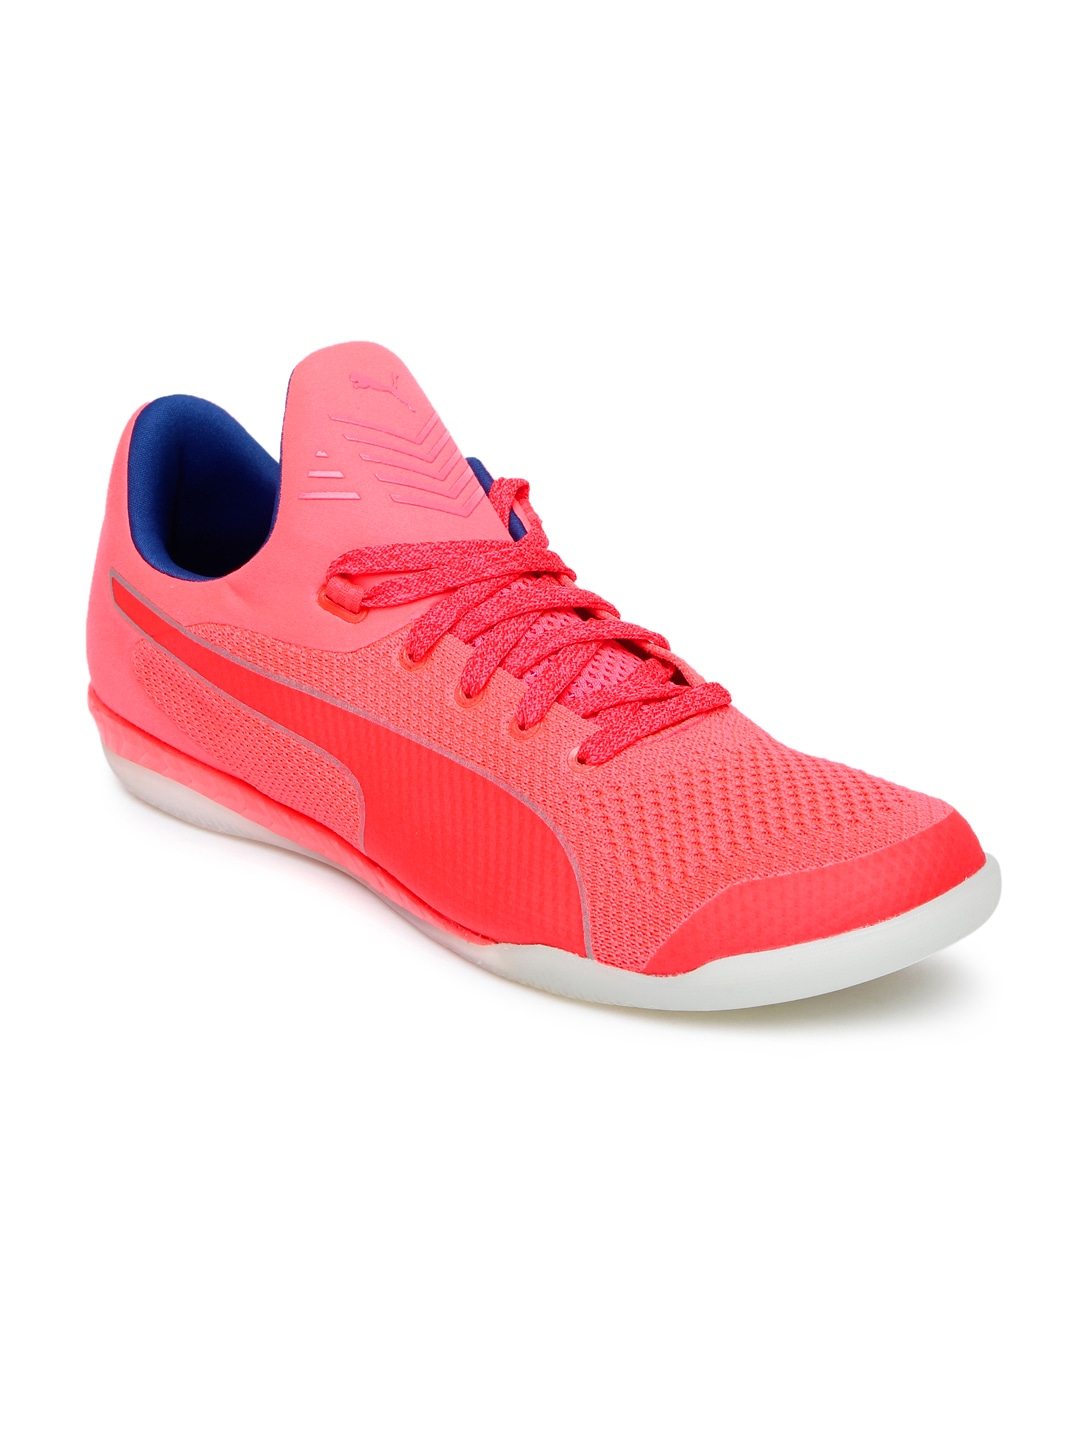 Puma Men Pink evoKNIT IGNITE CT Football Shoes 202f912b0